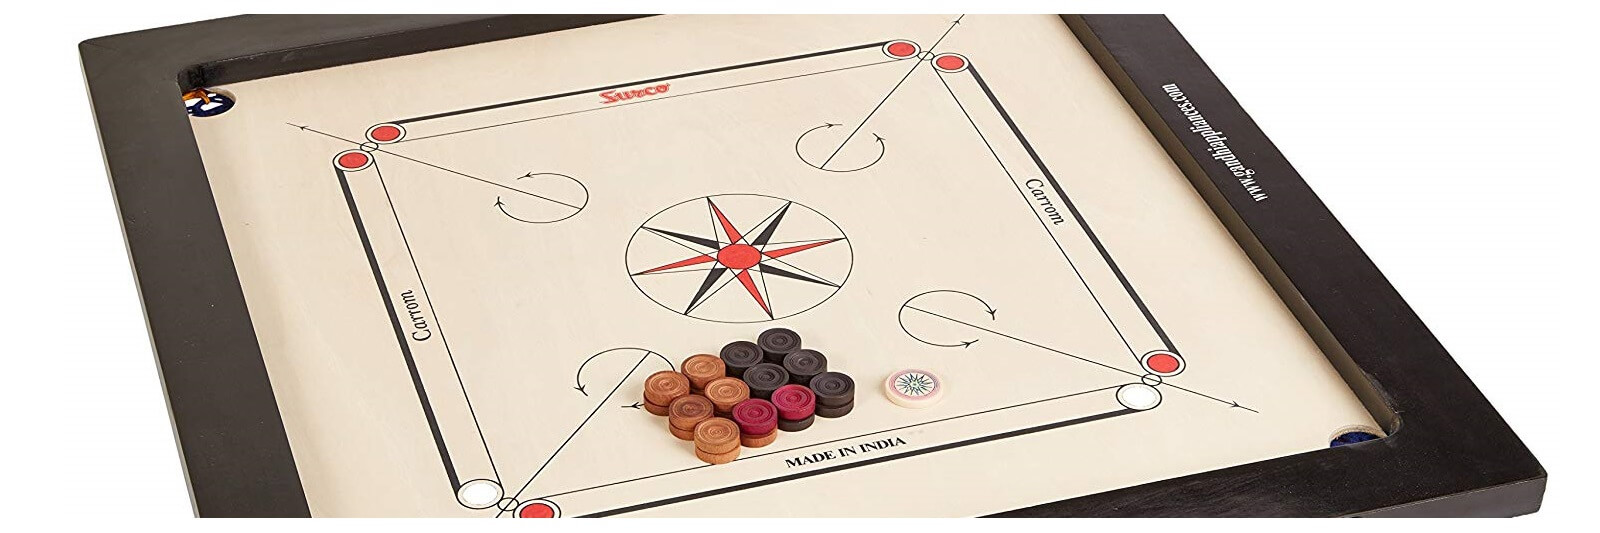 Carrom Board Rules | Carrom Board Tips & Tricks | Carrom ...